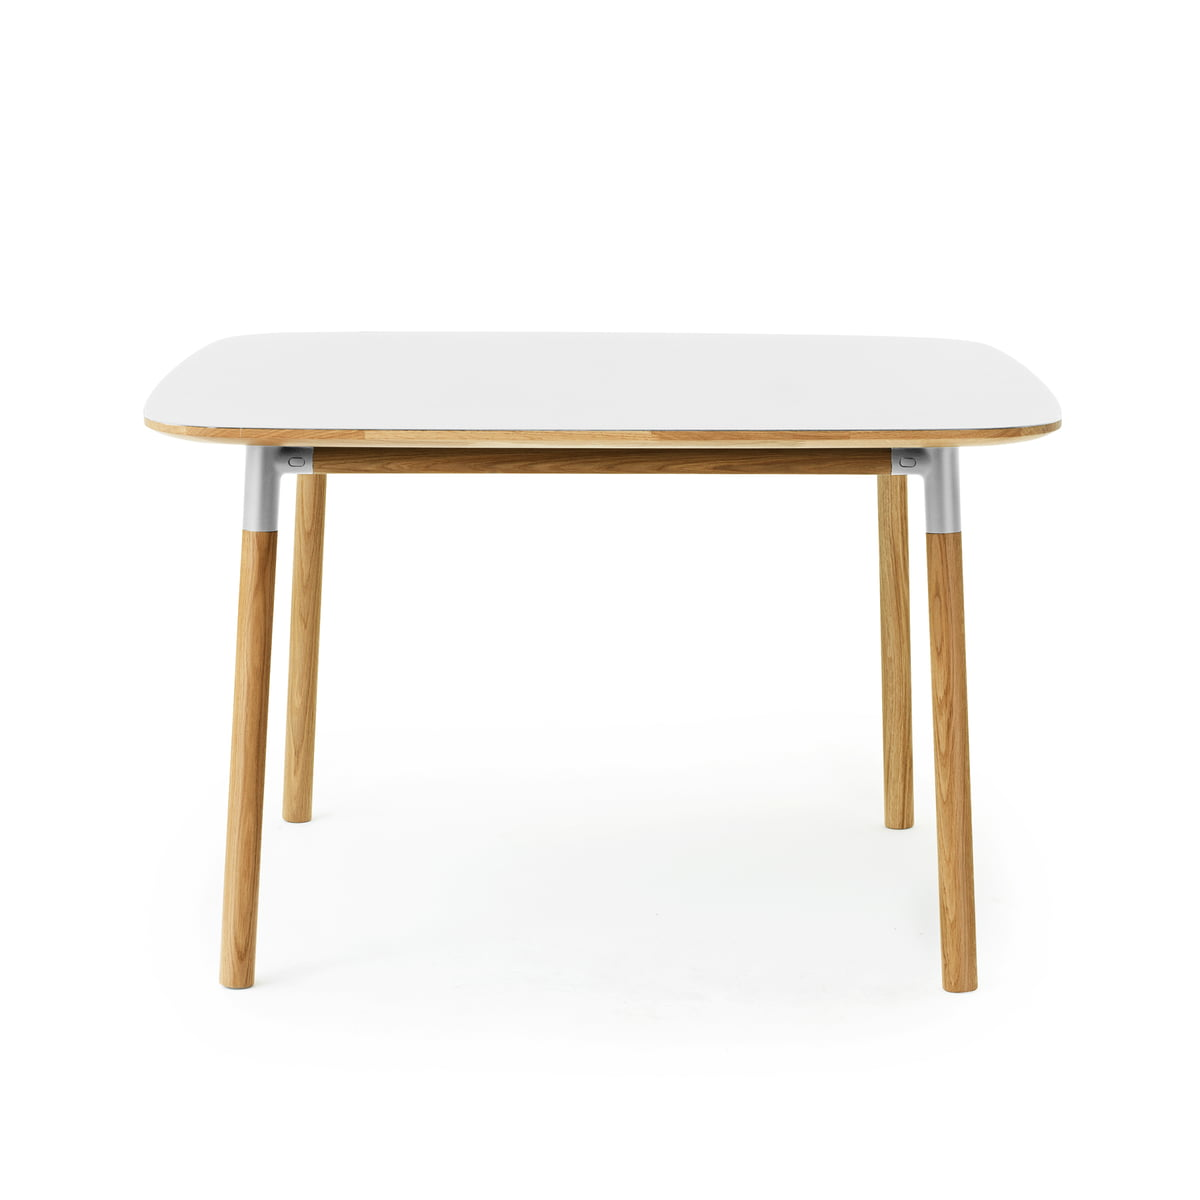 Table salle a manger largeur 120 gallery of table de for Table salle a manger 80 cm largeur